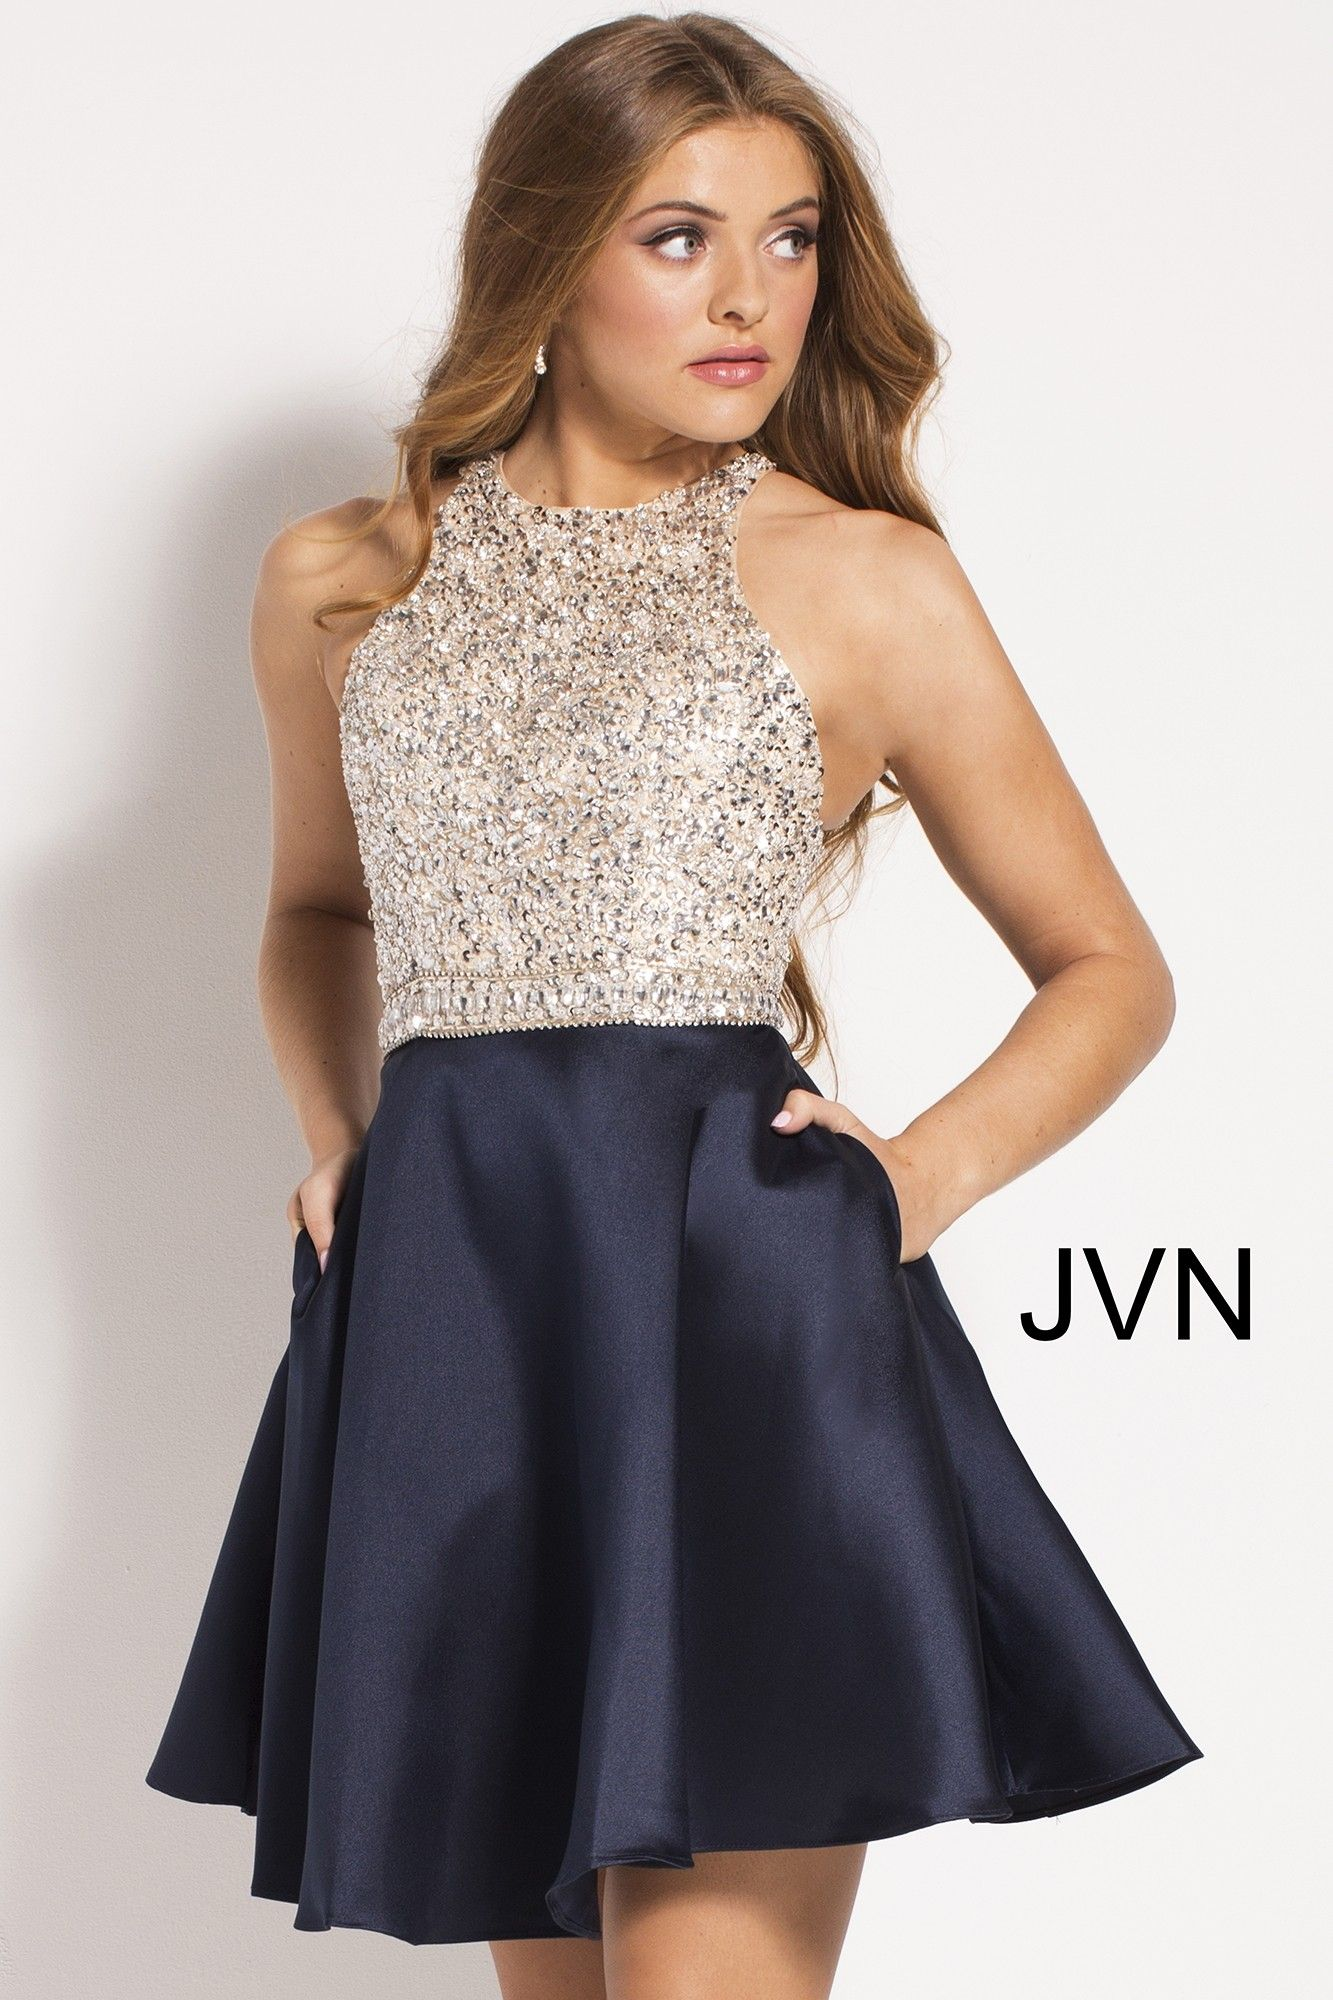 bdcff275310 JVN by Jovani JVN57782 Two-Tone Mini Dress with Embellishment in ...